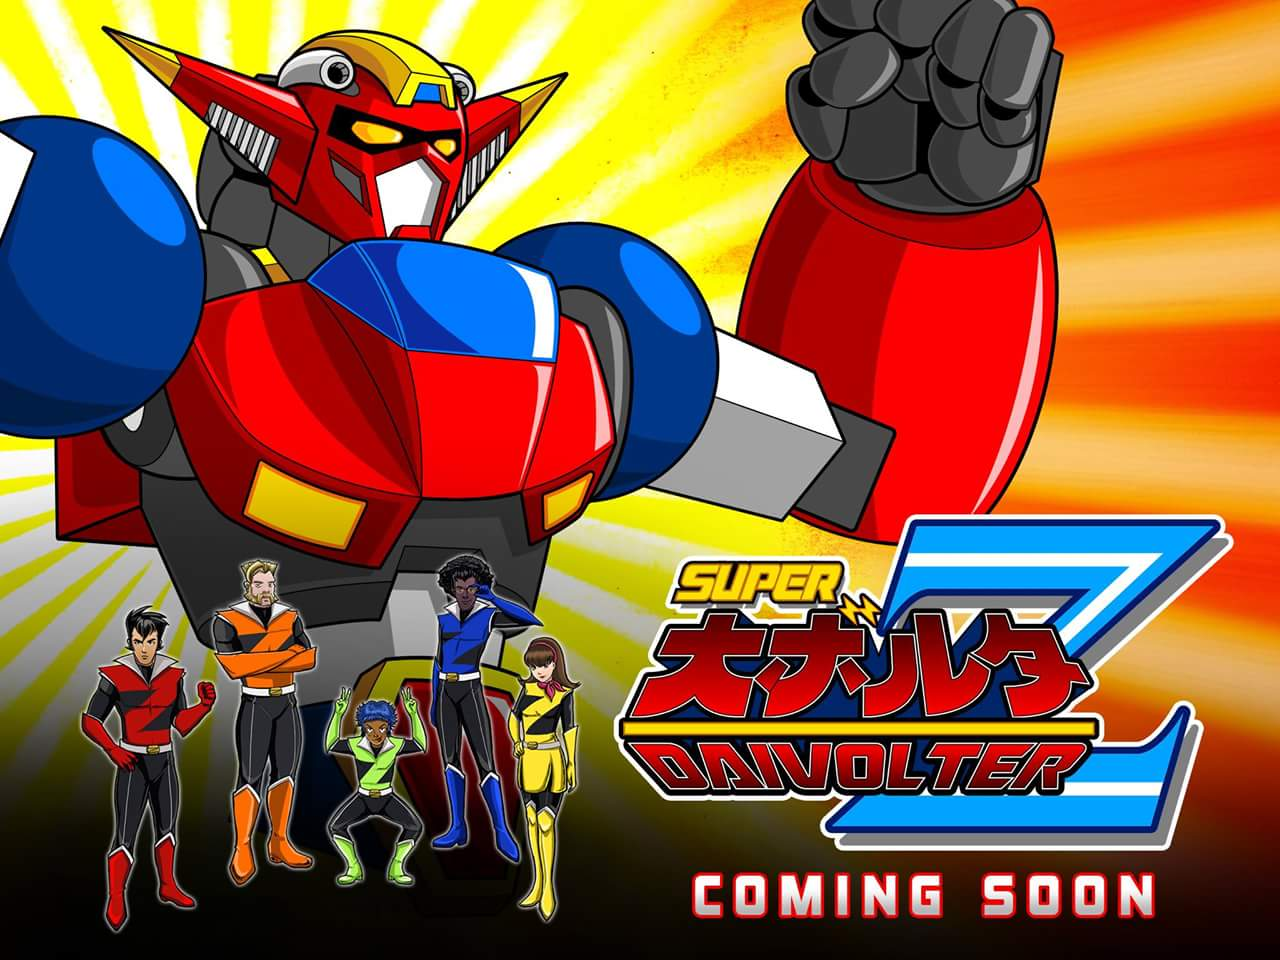 MECHA TRIBUTE. Daivolter Z takes inspiration from the giant robot anime shows of yore. Image from Popsicle Games